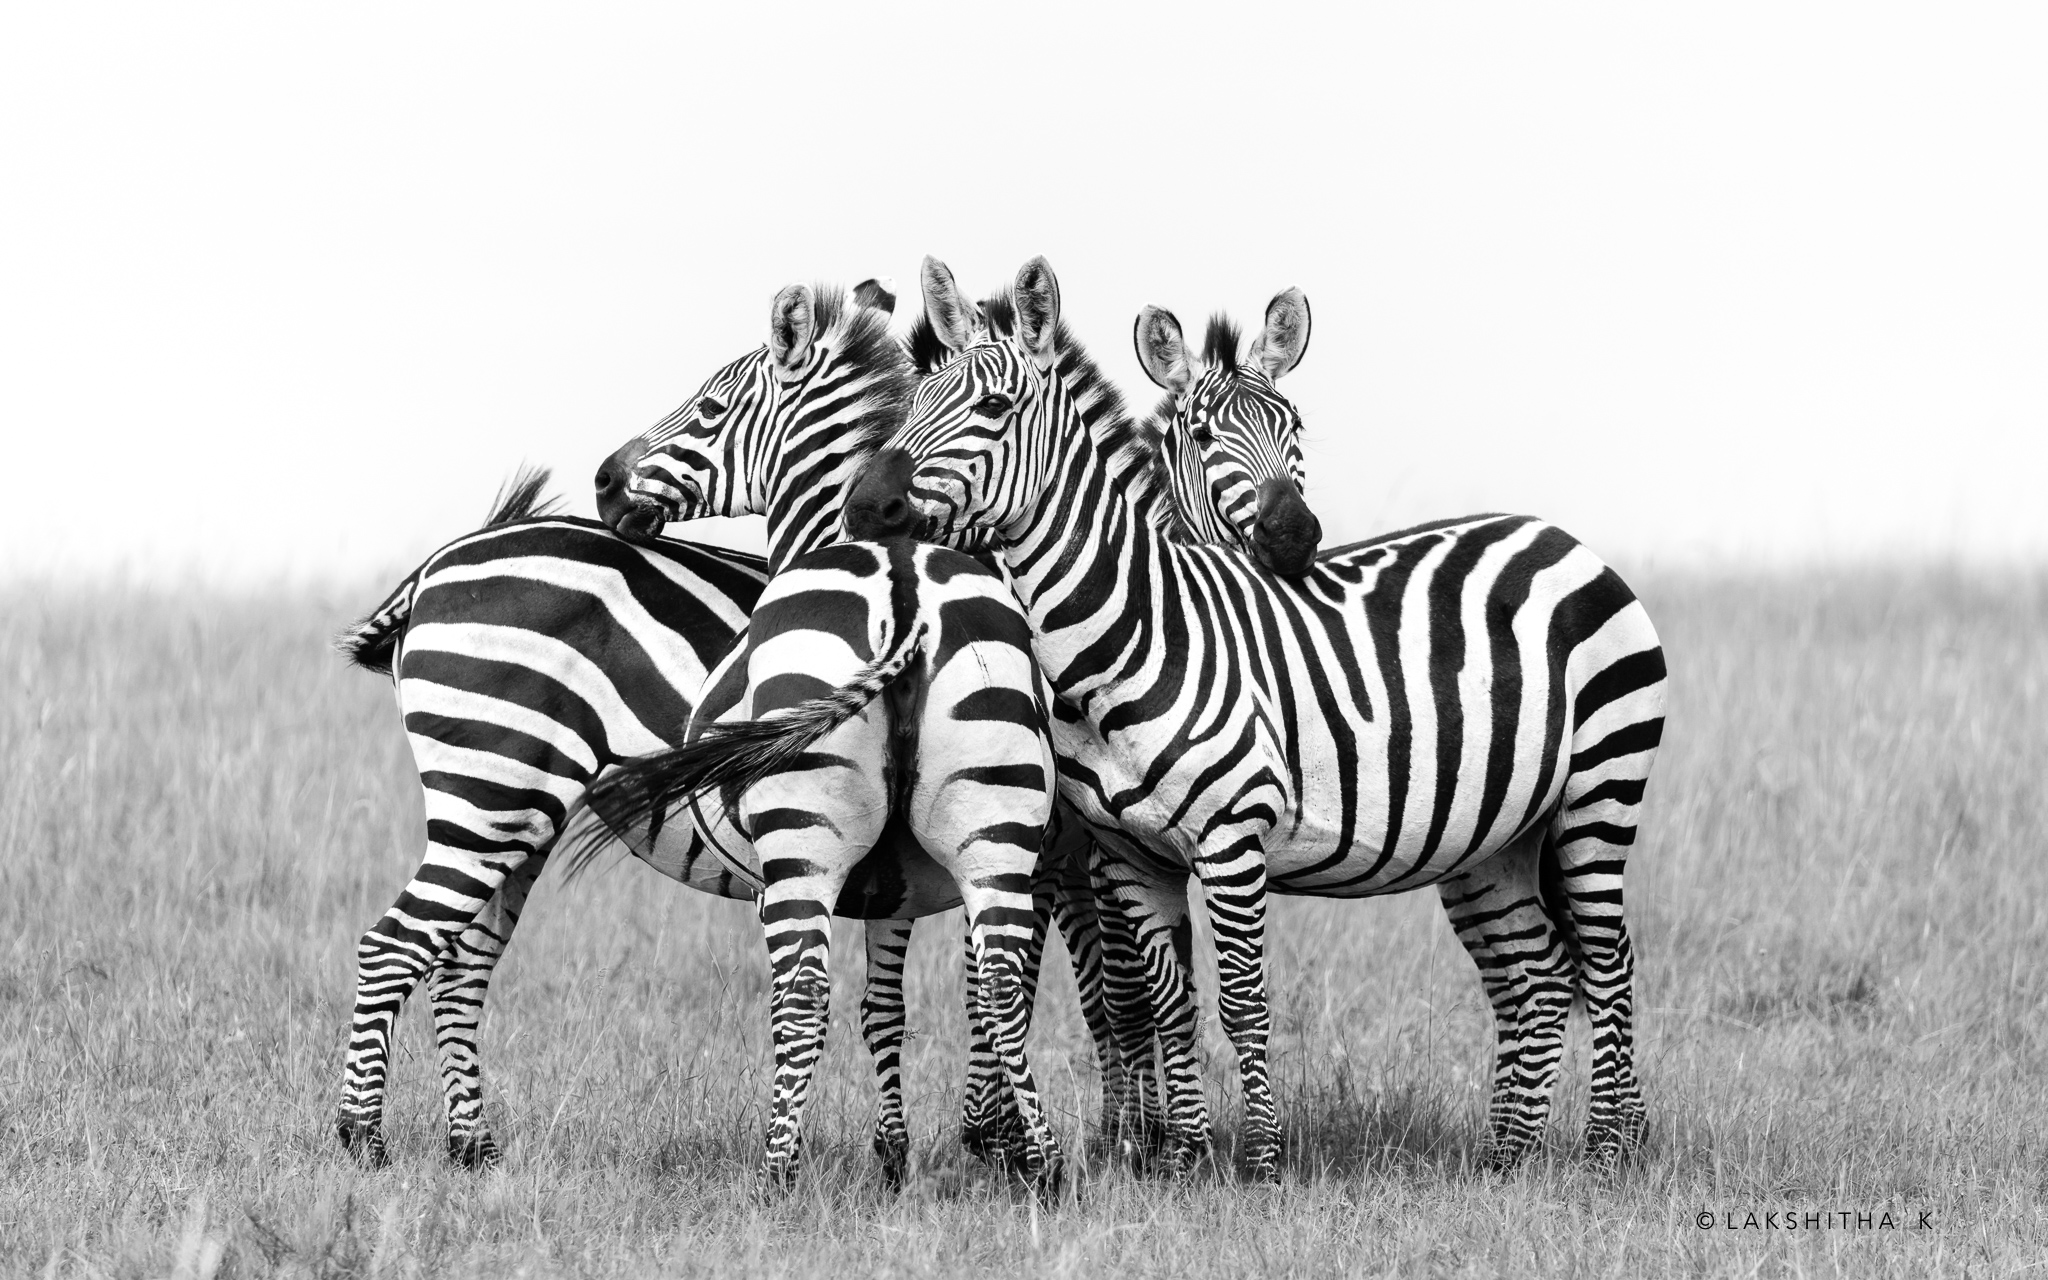 Zebra huddle